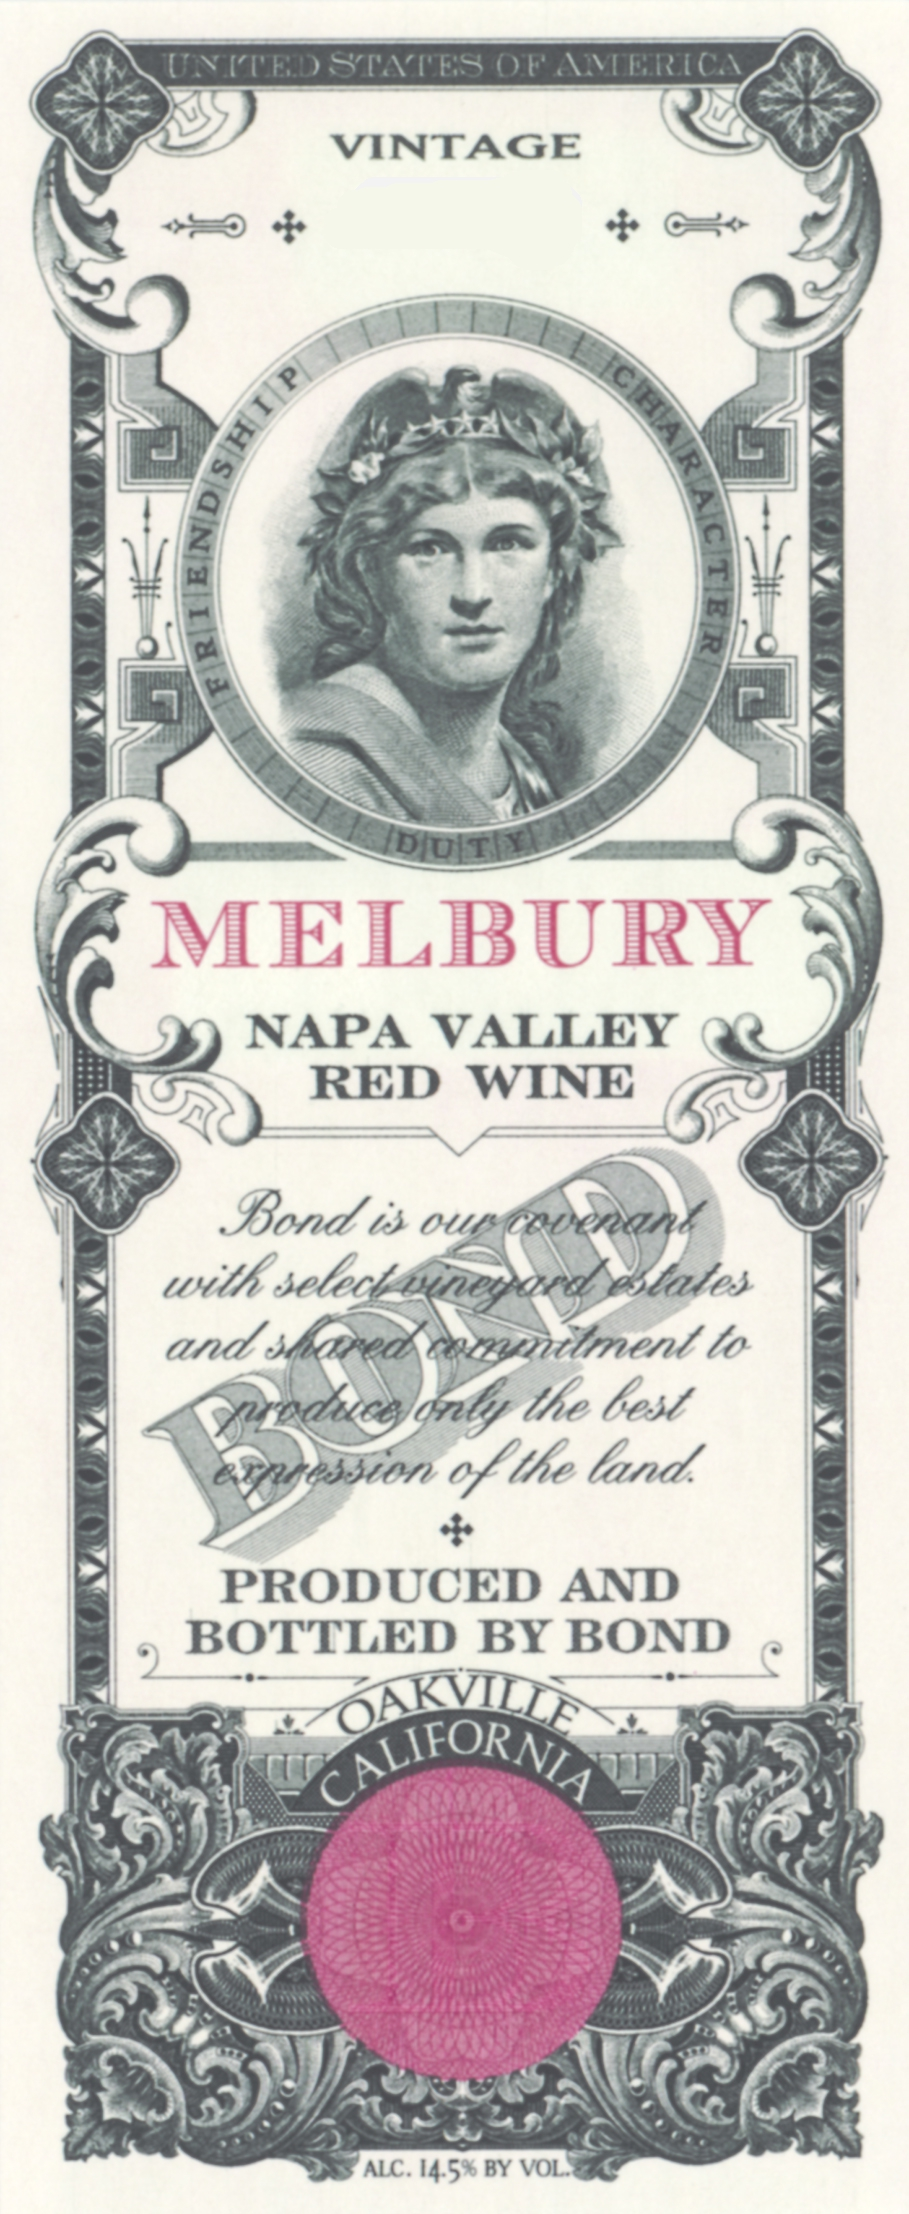 Bond Melbury label